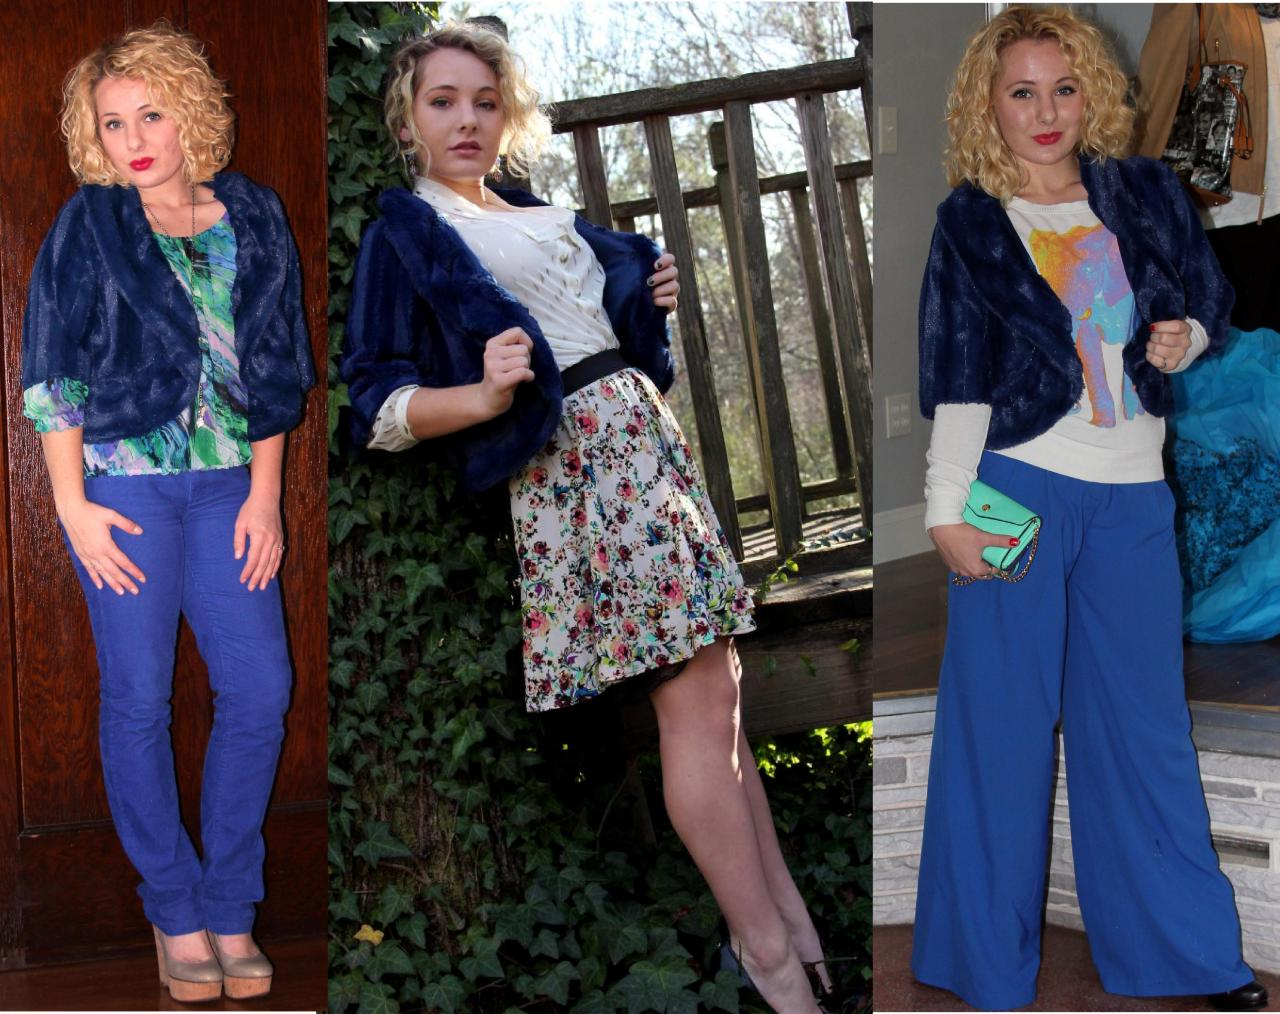 "Here are two previous ways I have worn my cobalt, faux fur shawl on the blog + a snazzy new way to wear it. Who knew blue ""fur"" could be so versatile?! Floral Skirt: https://vintageinspiredpassionista.com/2013/01/04/omg-its-2013-part-two/ Elephant Sweater: https://vintageinspiredpassionista.com/2014/11/03/vip-scrapbook-4u-ultimate-girls-day-out-comes-to-johnson-city-tn/"